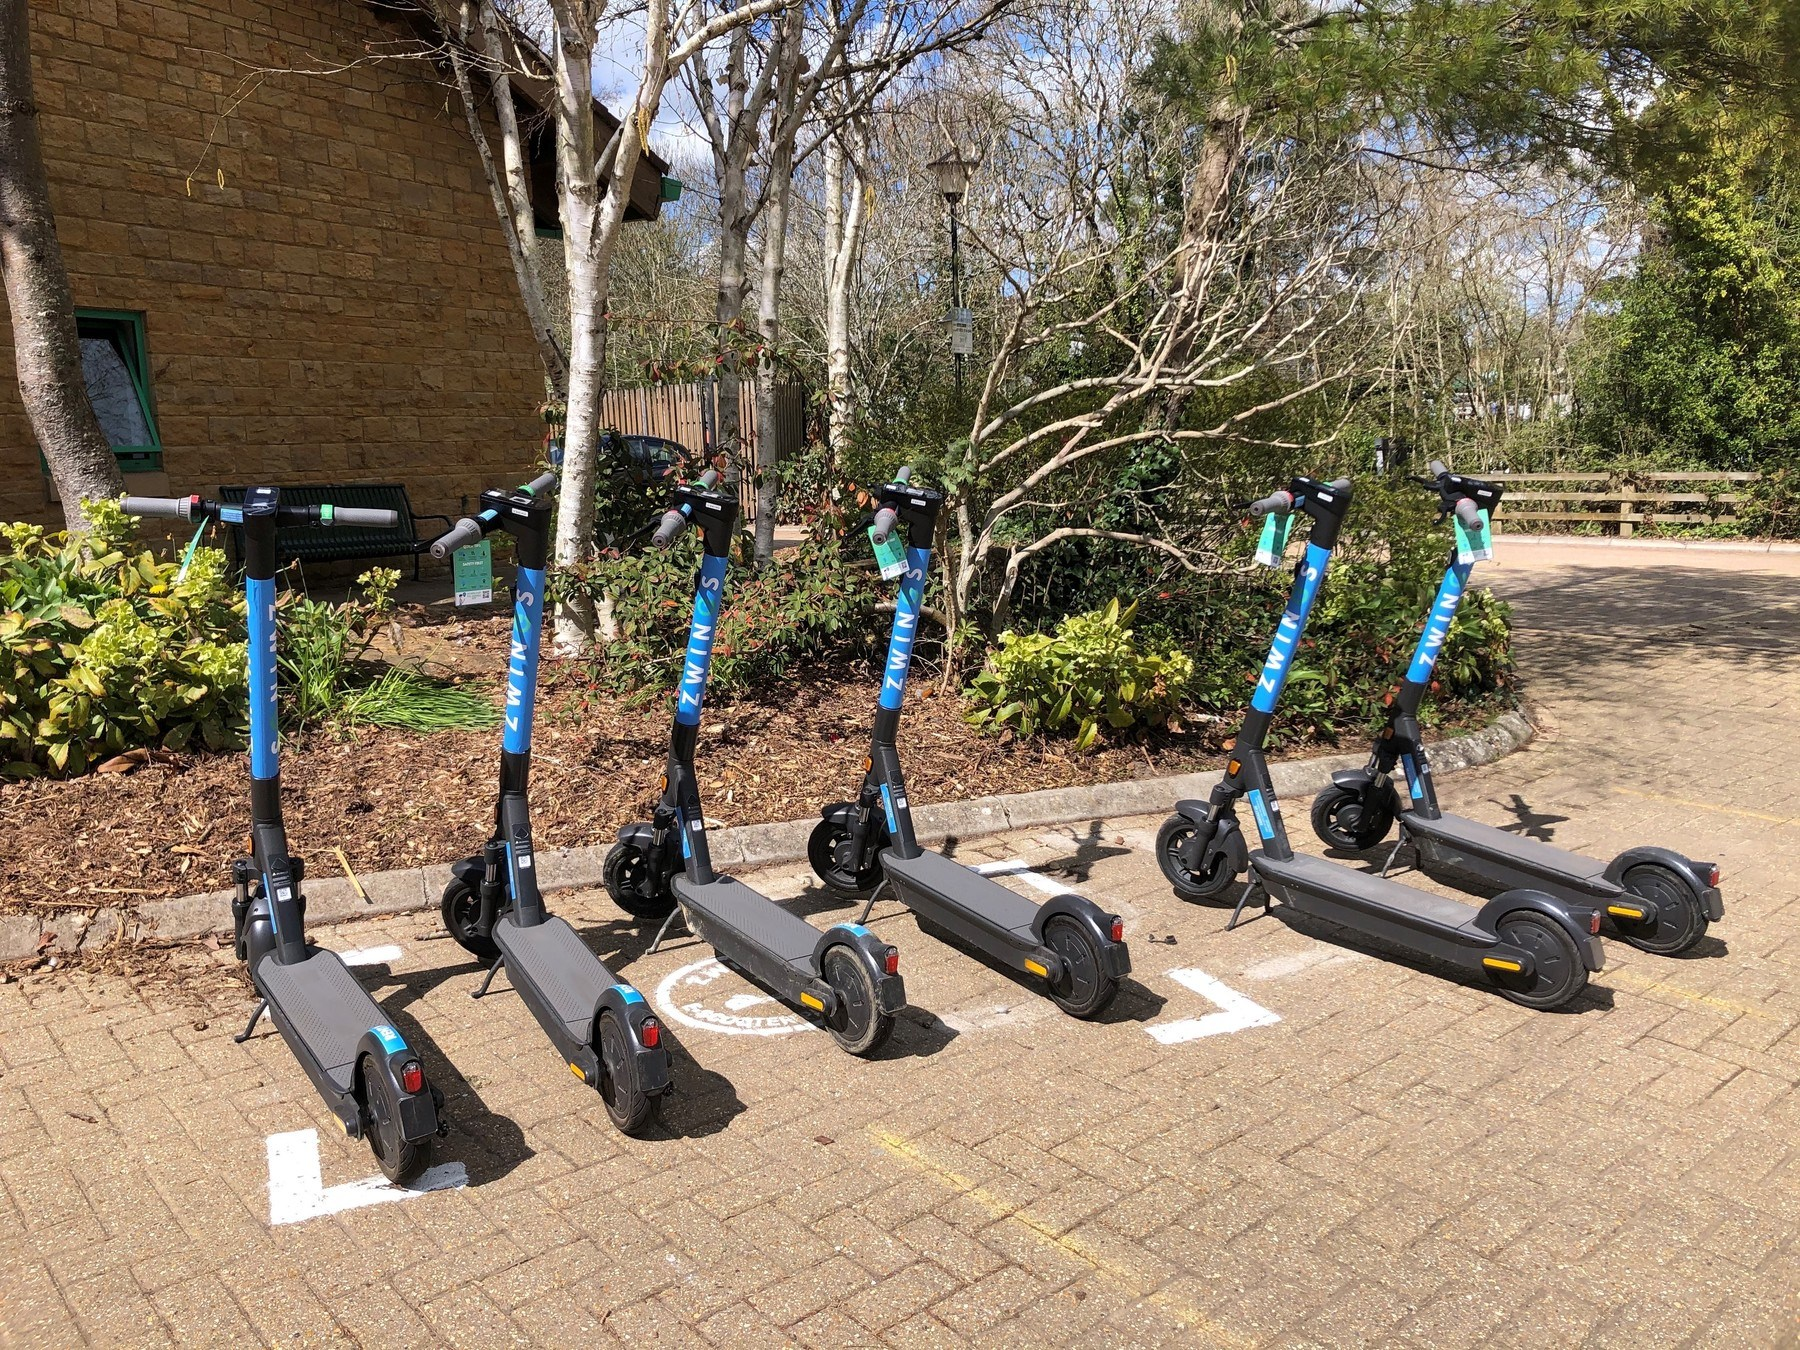 Top 3 Insights From E-scooter Trial In Chard And Crewkerne So Far